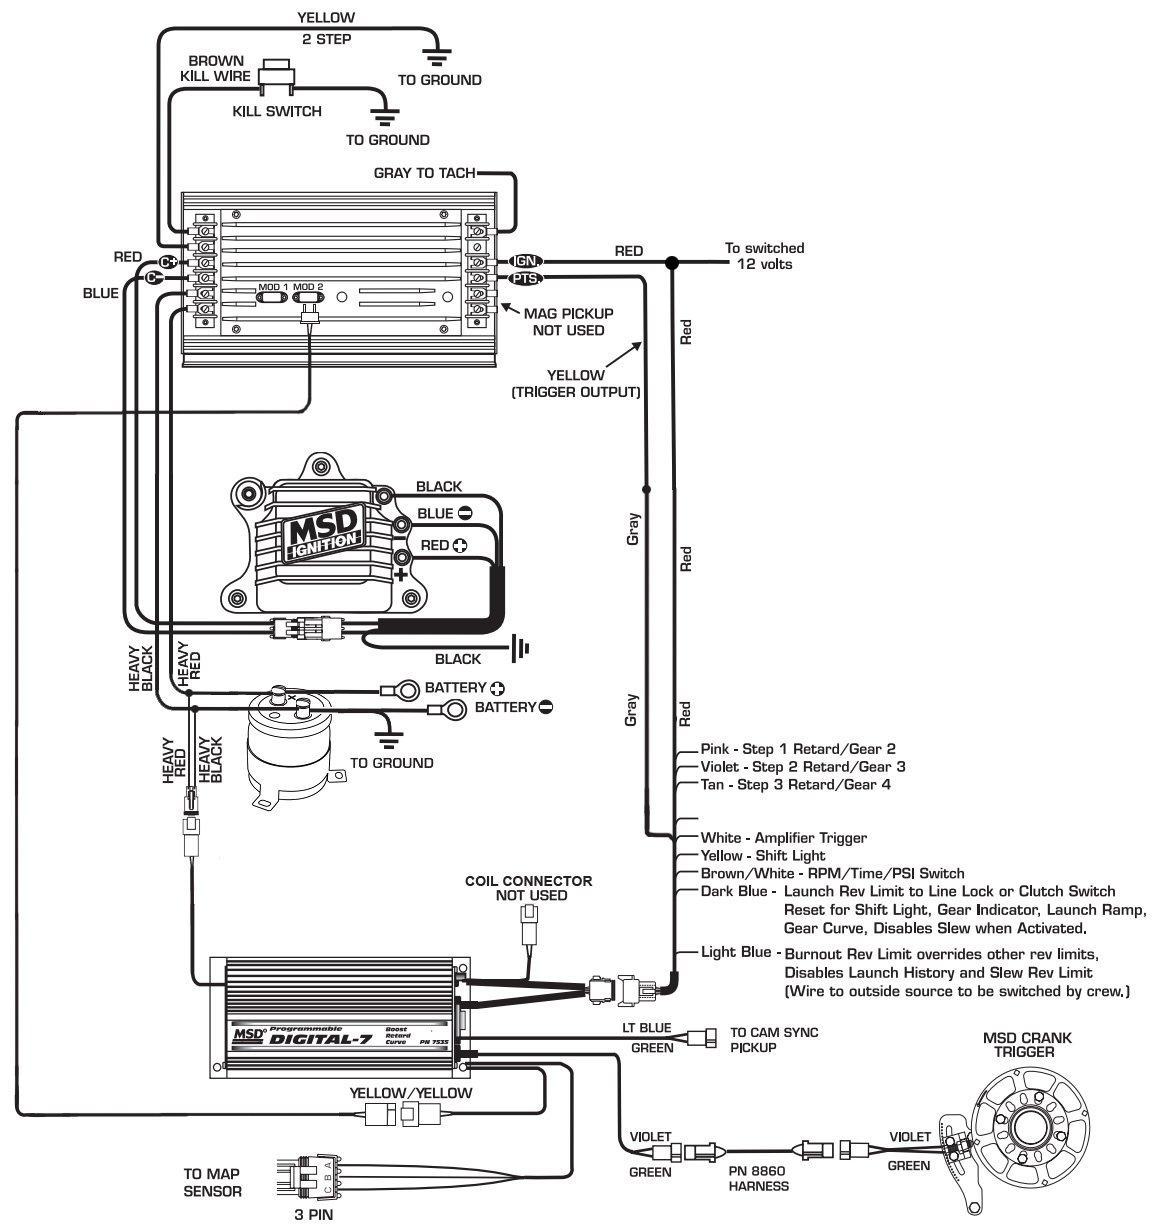 Swell Msd 7531 Wiring Diagram Wiring Diagram Wiring Database Obenzyuccorg